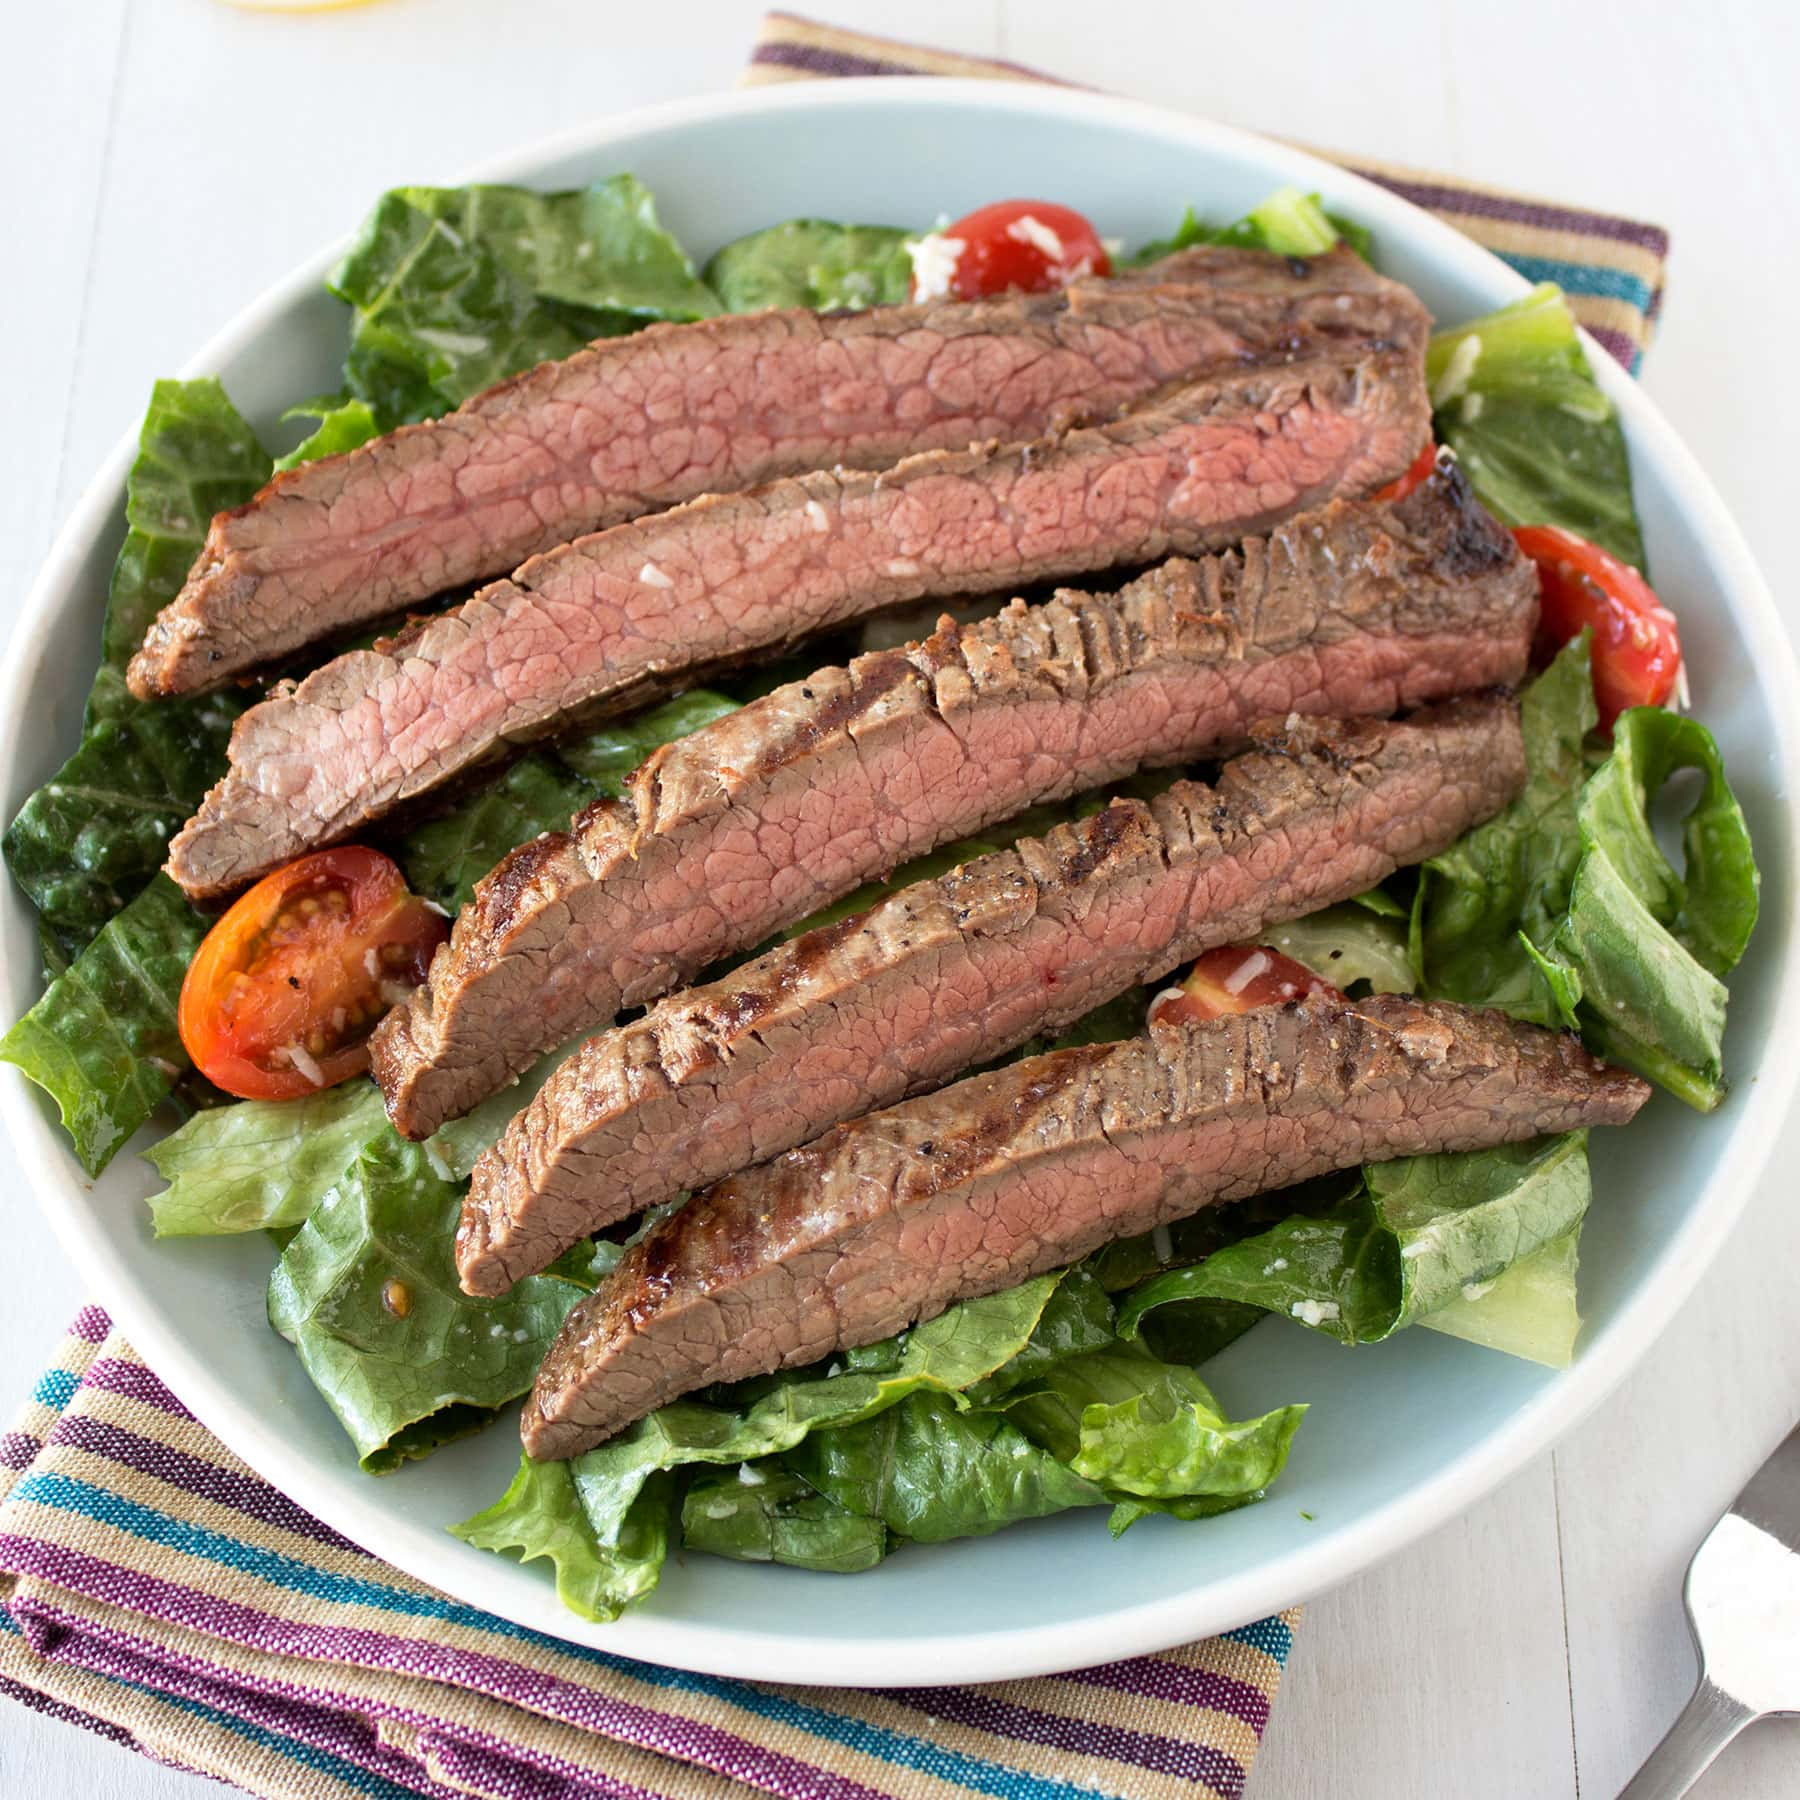 This Easy Grilled Steak Salad recipe is super fresh, flavorful, and simple and bound to become a new favorite!